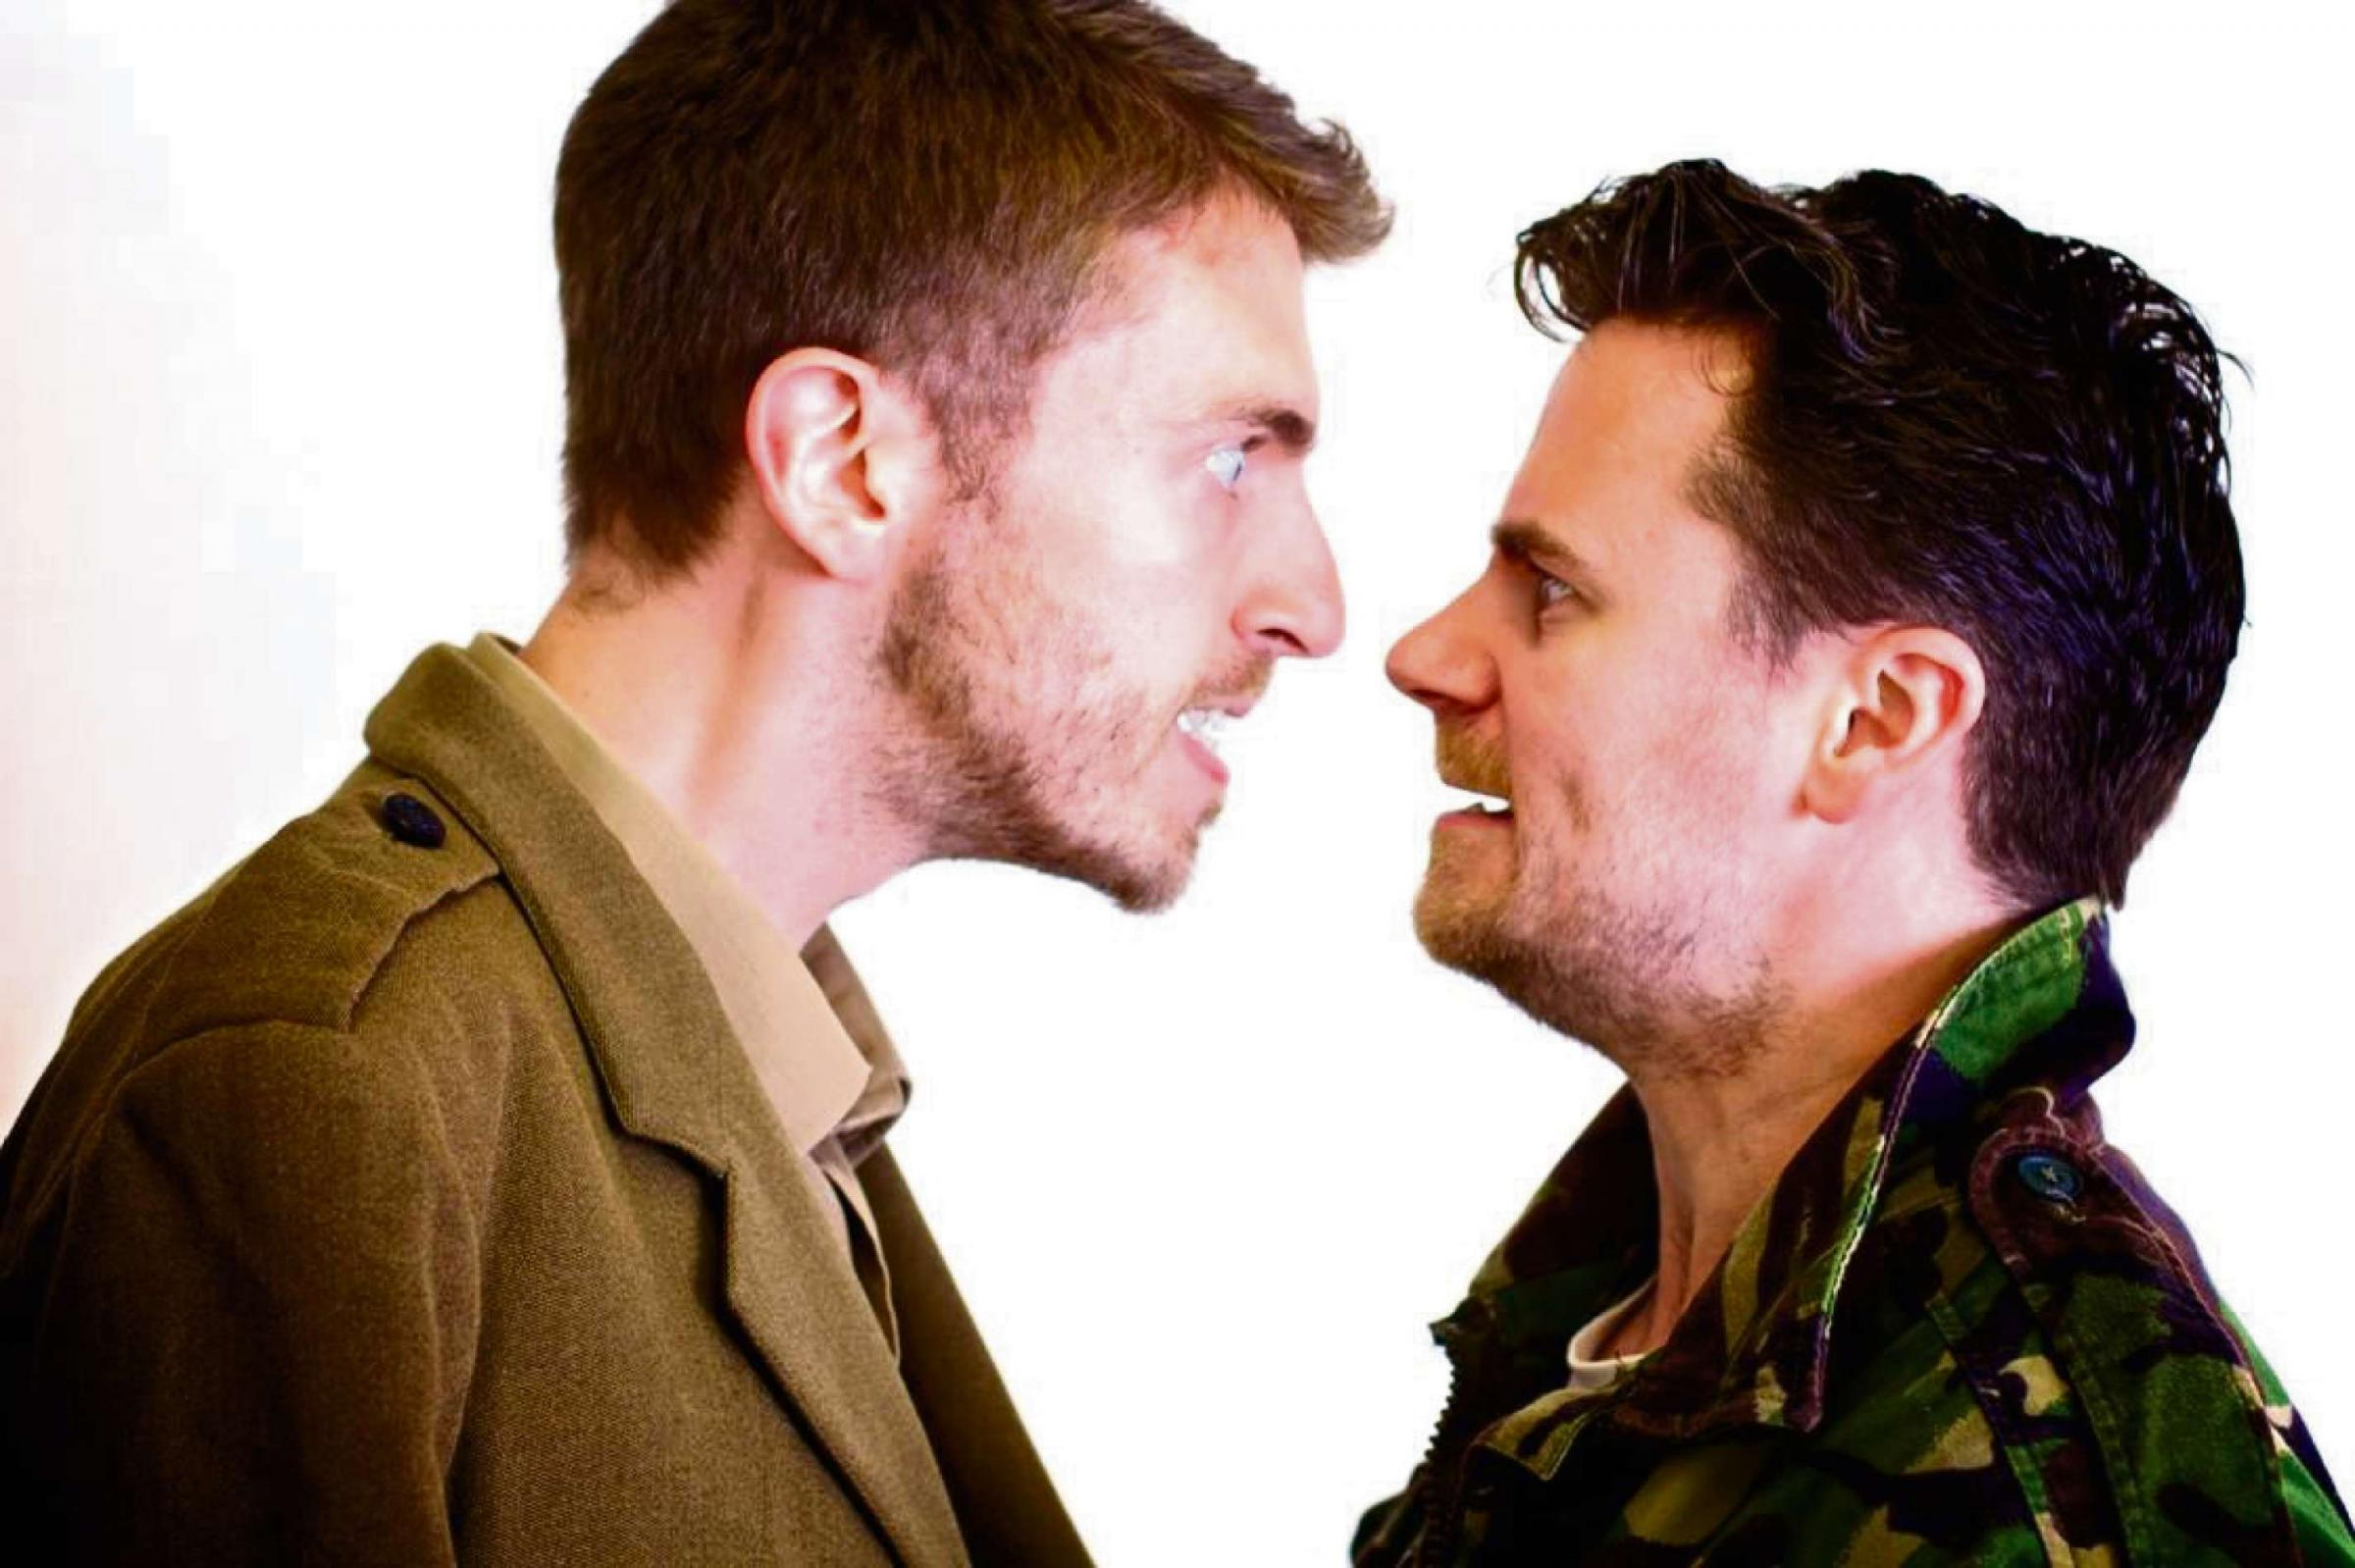 WAR: Alan Humphreys as a First World War soldier and Neal McWilliams as a contemporary soldier in the The War is Dead Long Live The War by Patrick Jones